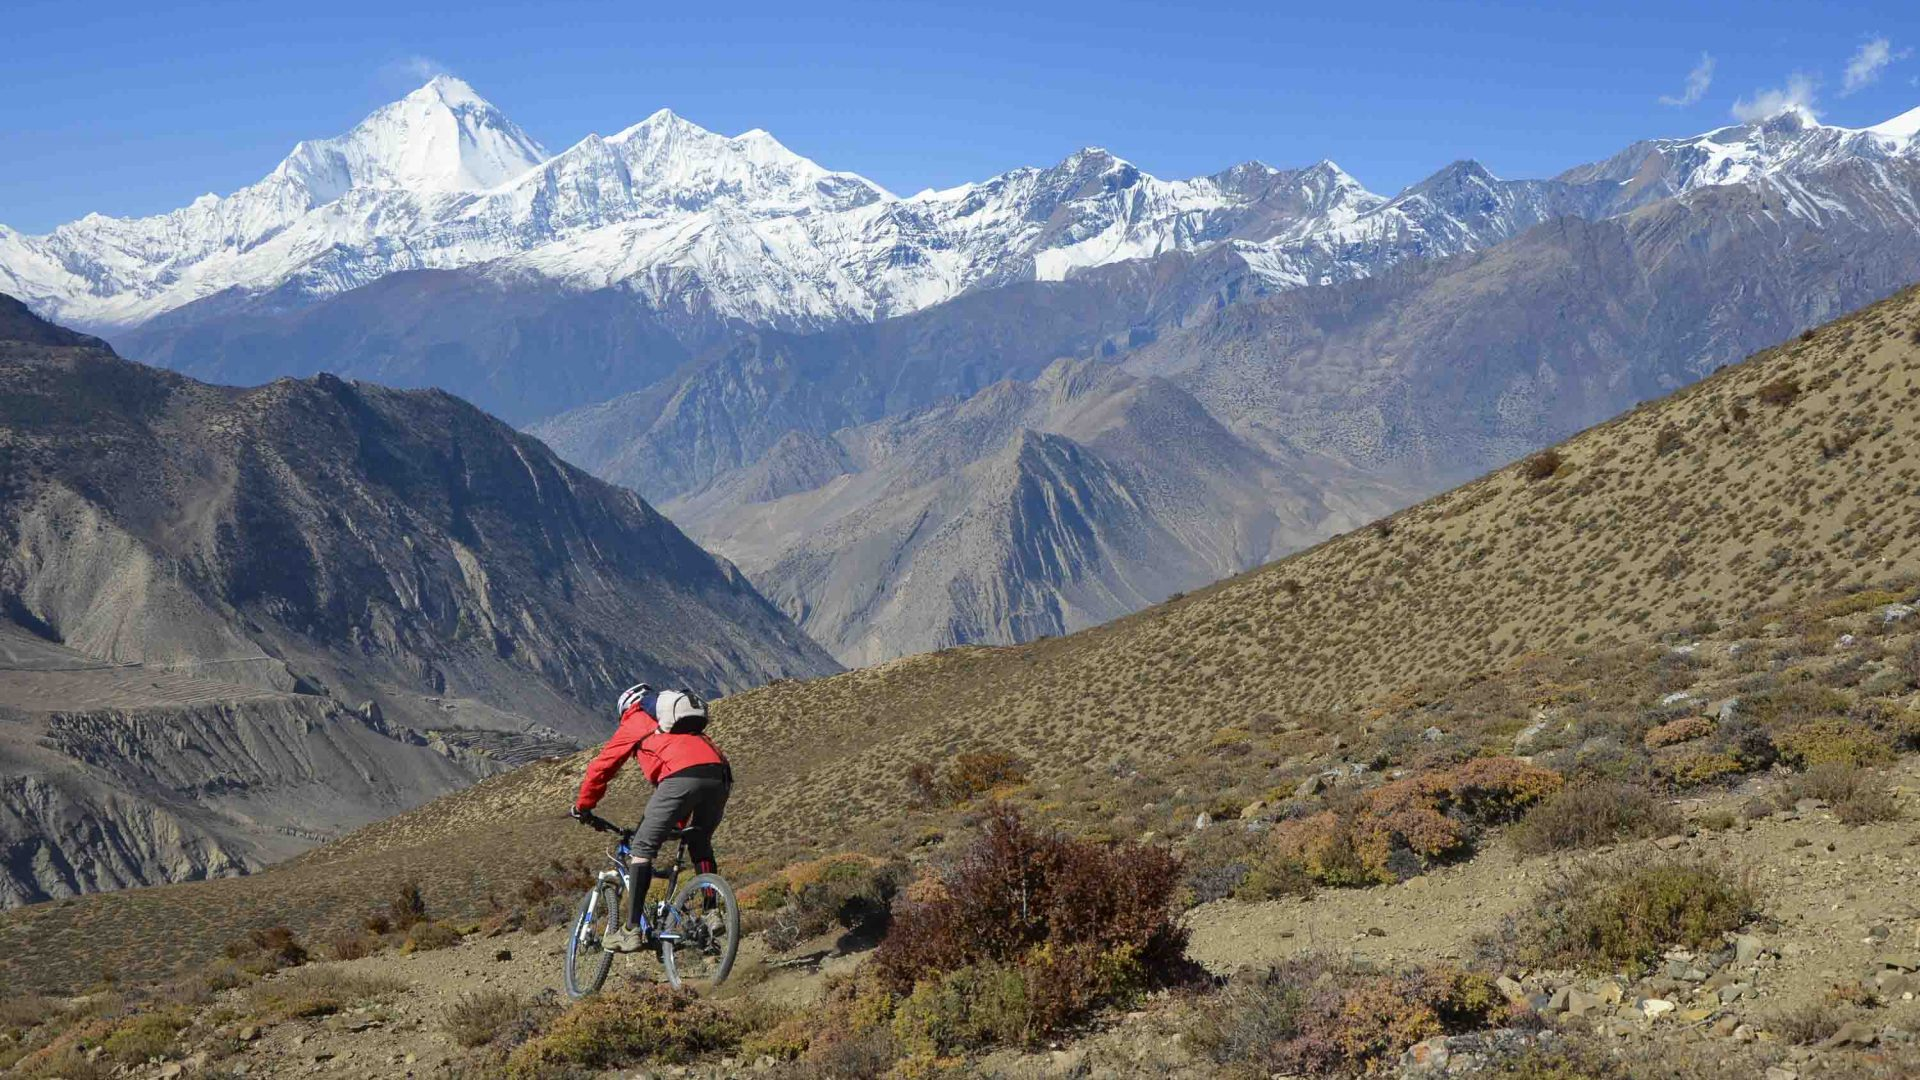 Biking in Nepal's stunning Himalayan Mountain Range.